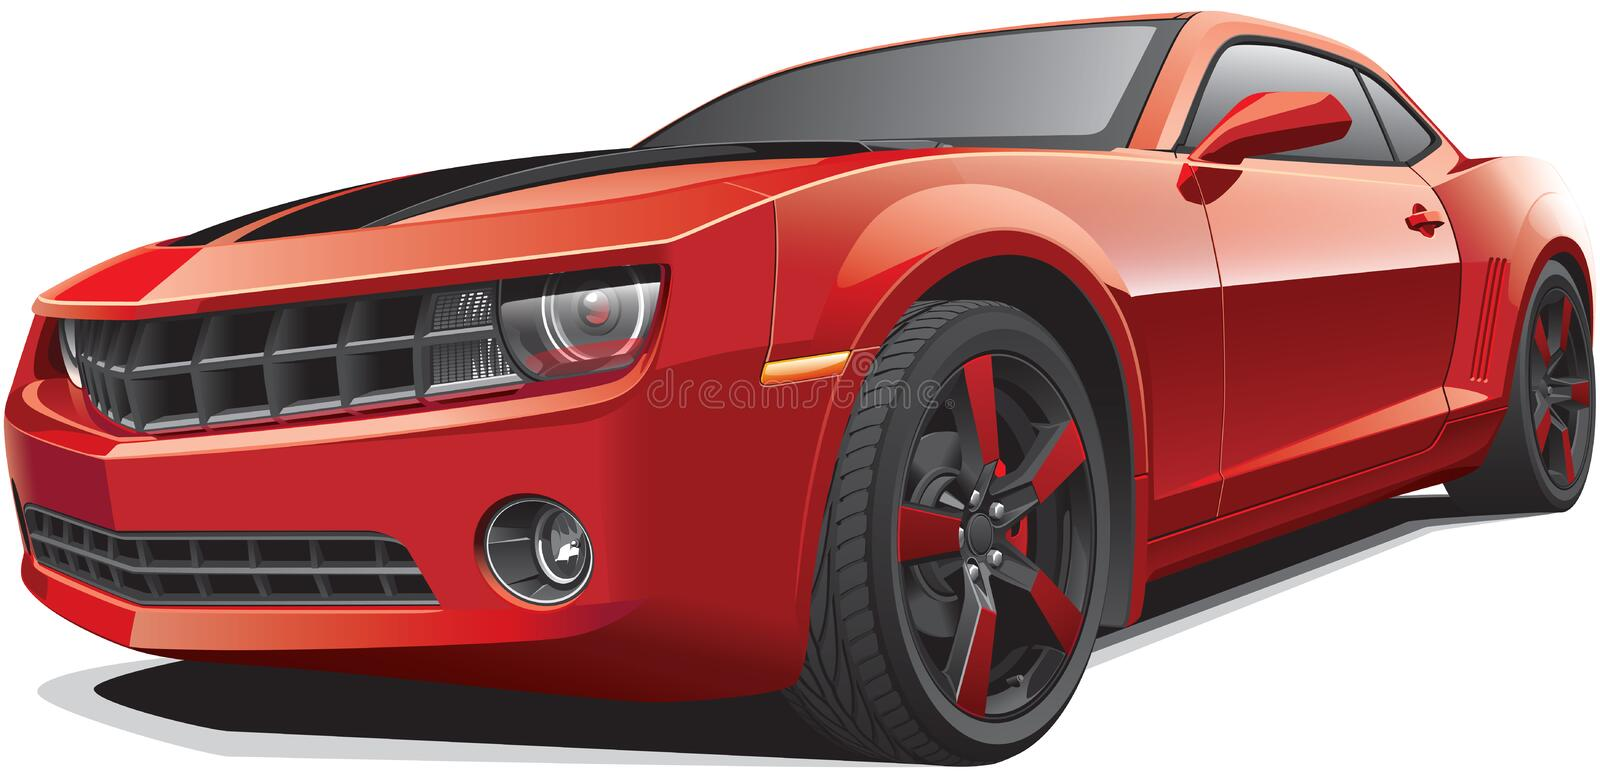 Red muscle car stock illustration